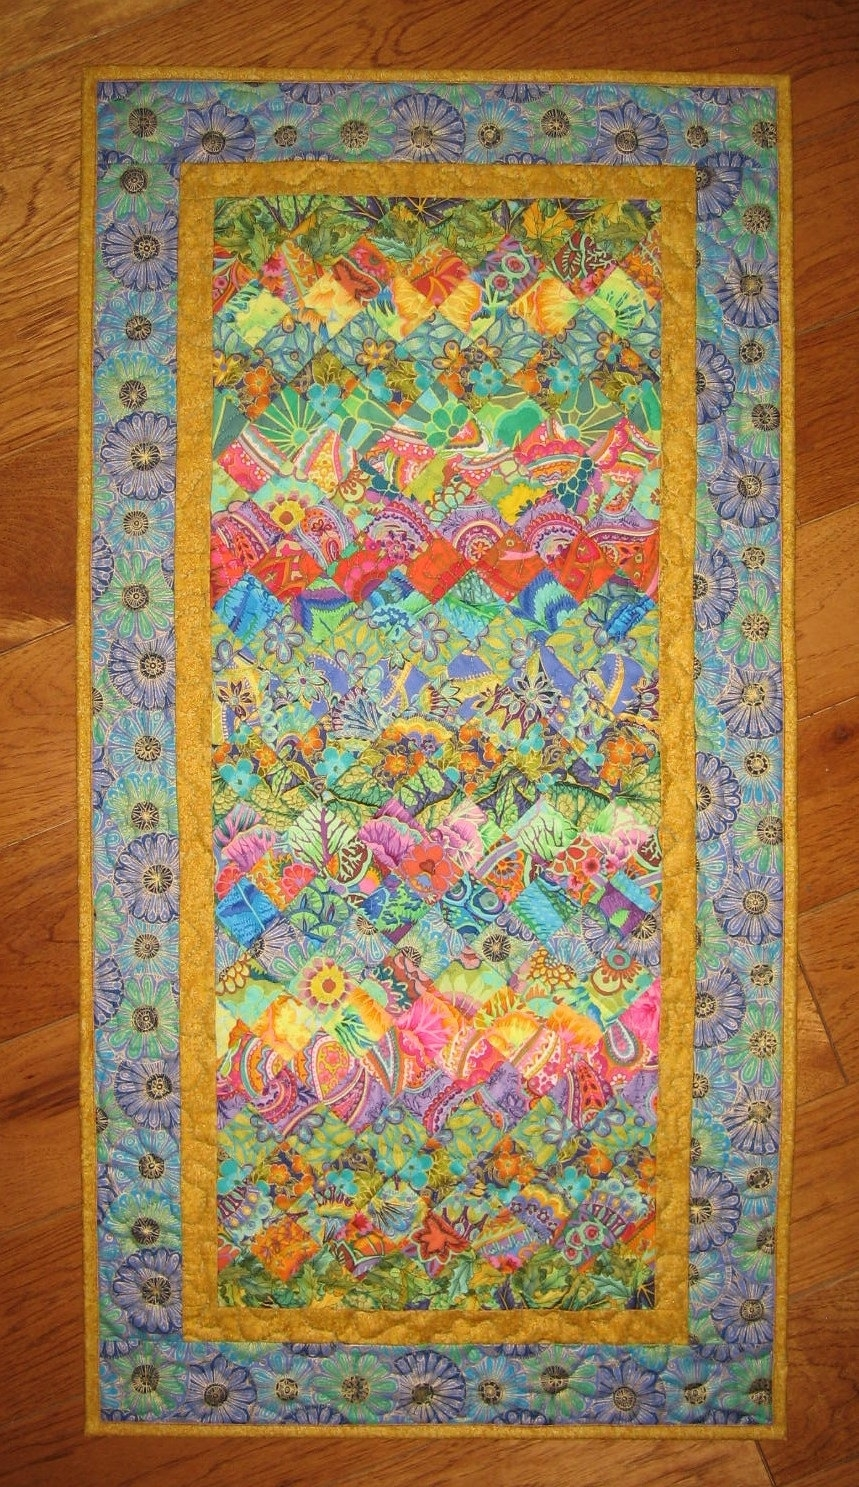 Art Deco Art Quilt, Paisley Turquoise, Orange, Yellow And Purple Within Most Popular Quilt Fabric Wall Art (View 15 of 15)